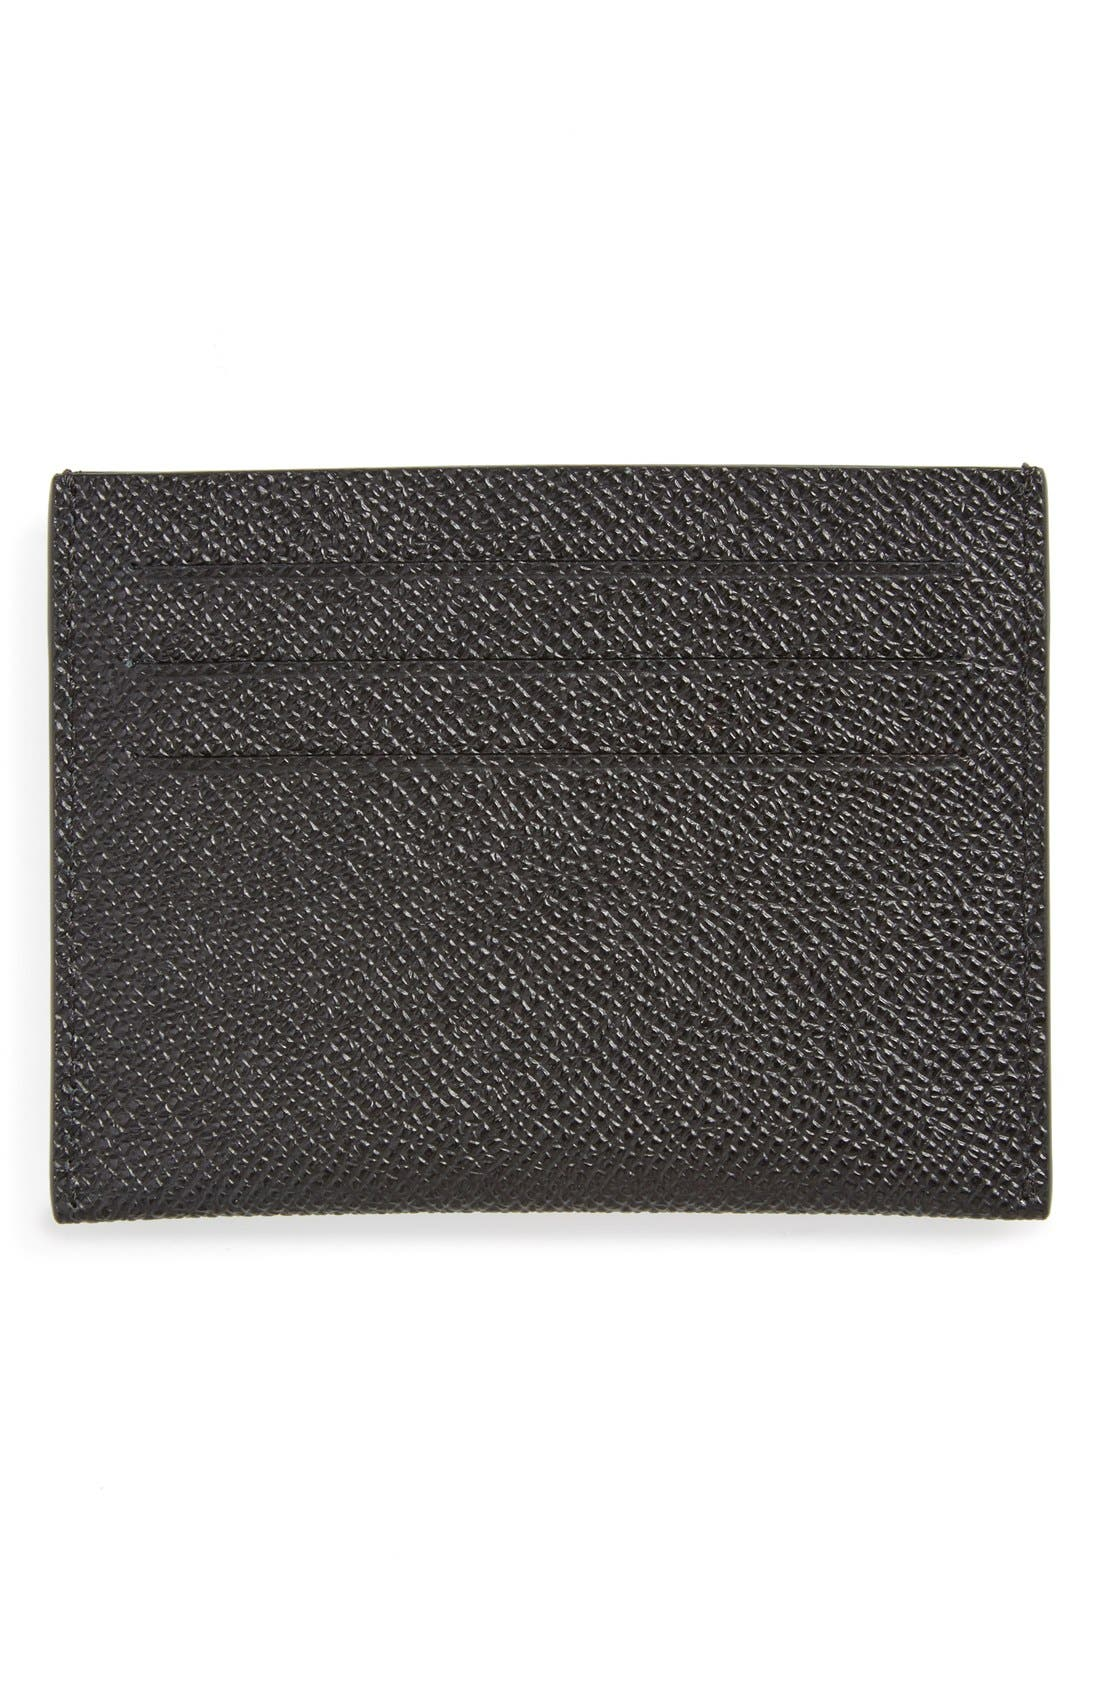 Textured Leather Card Case,                             Alternate thumbnail 2, color,                             BLACK